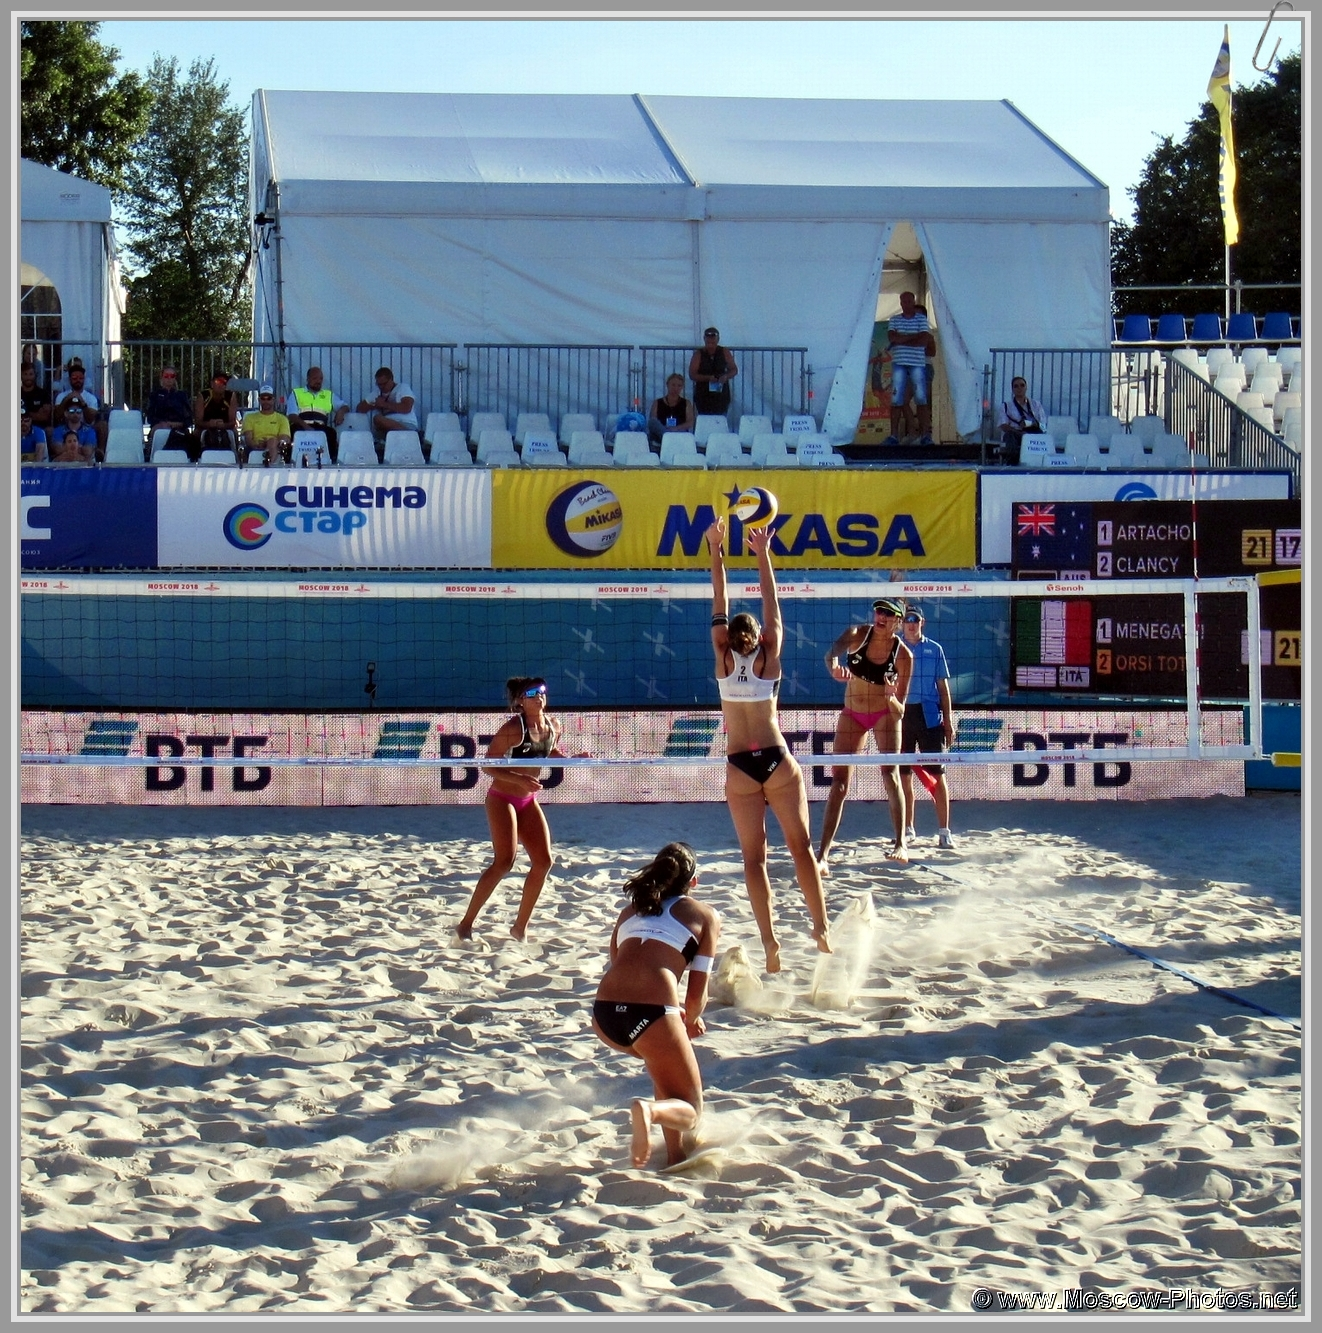 Viktoria Orsi Toth, Marta Menegatti, Taliqua Clancy, Mariafe Artacho del Solar on the court